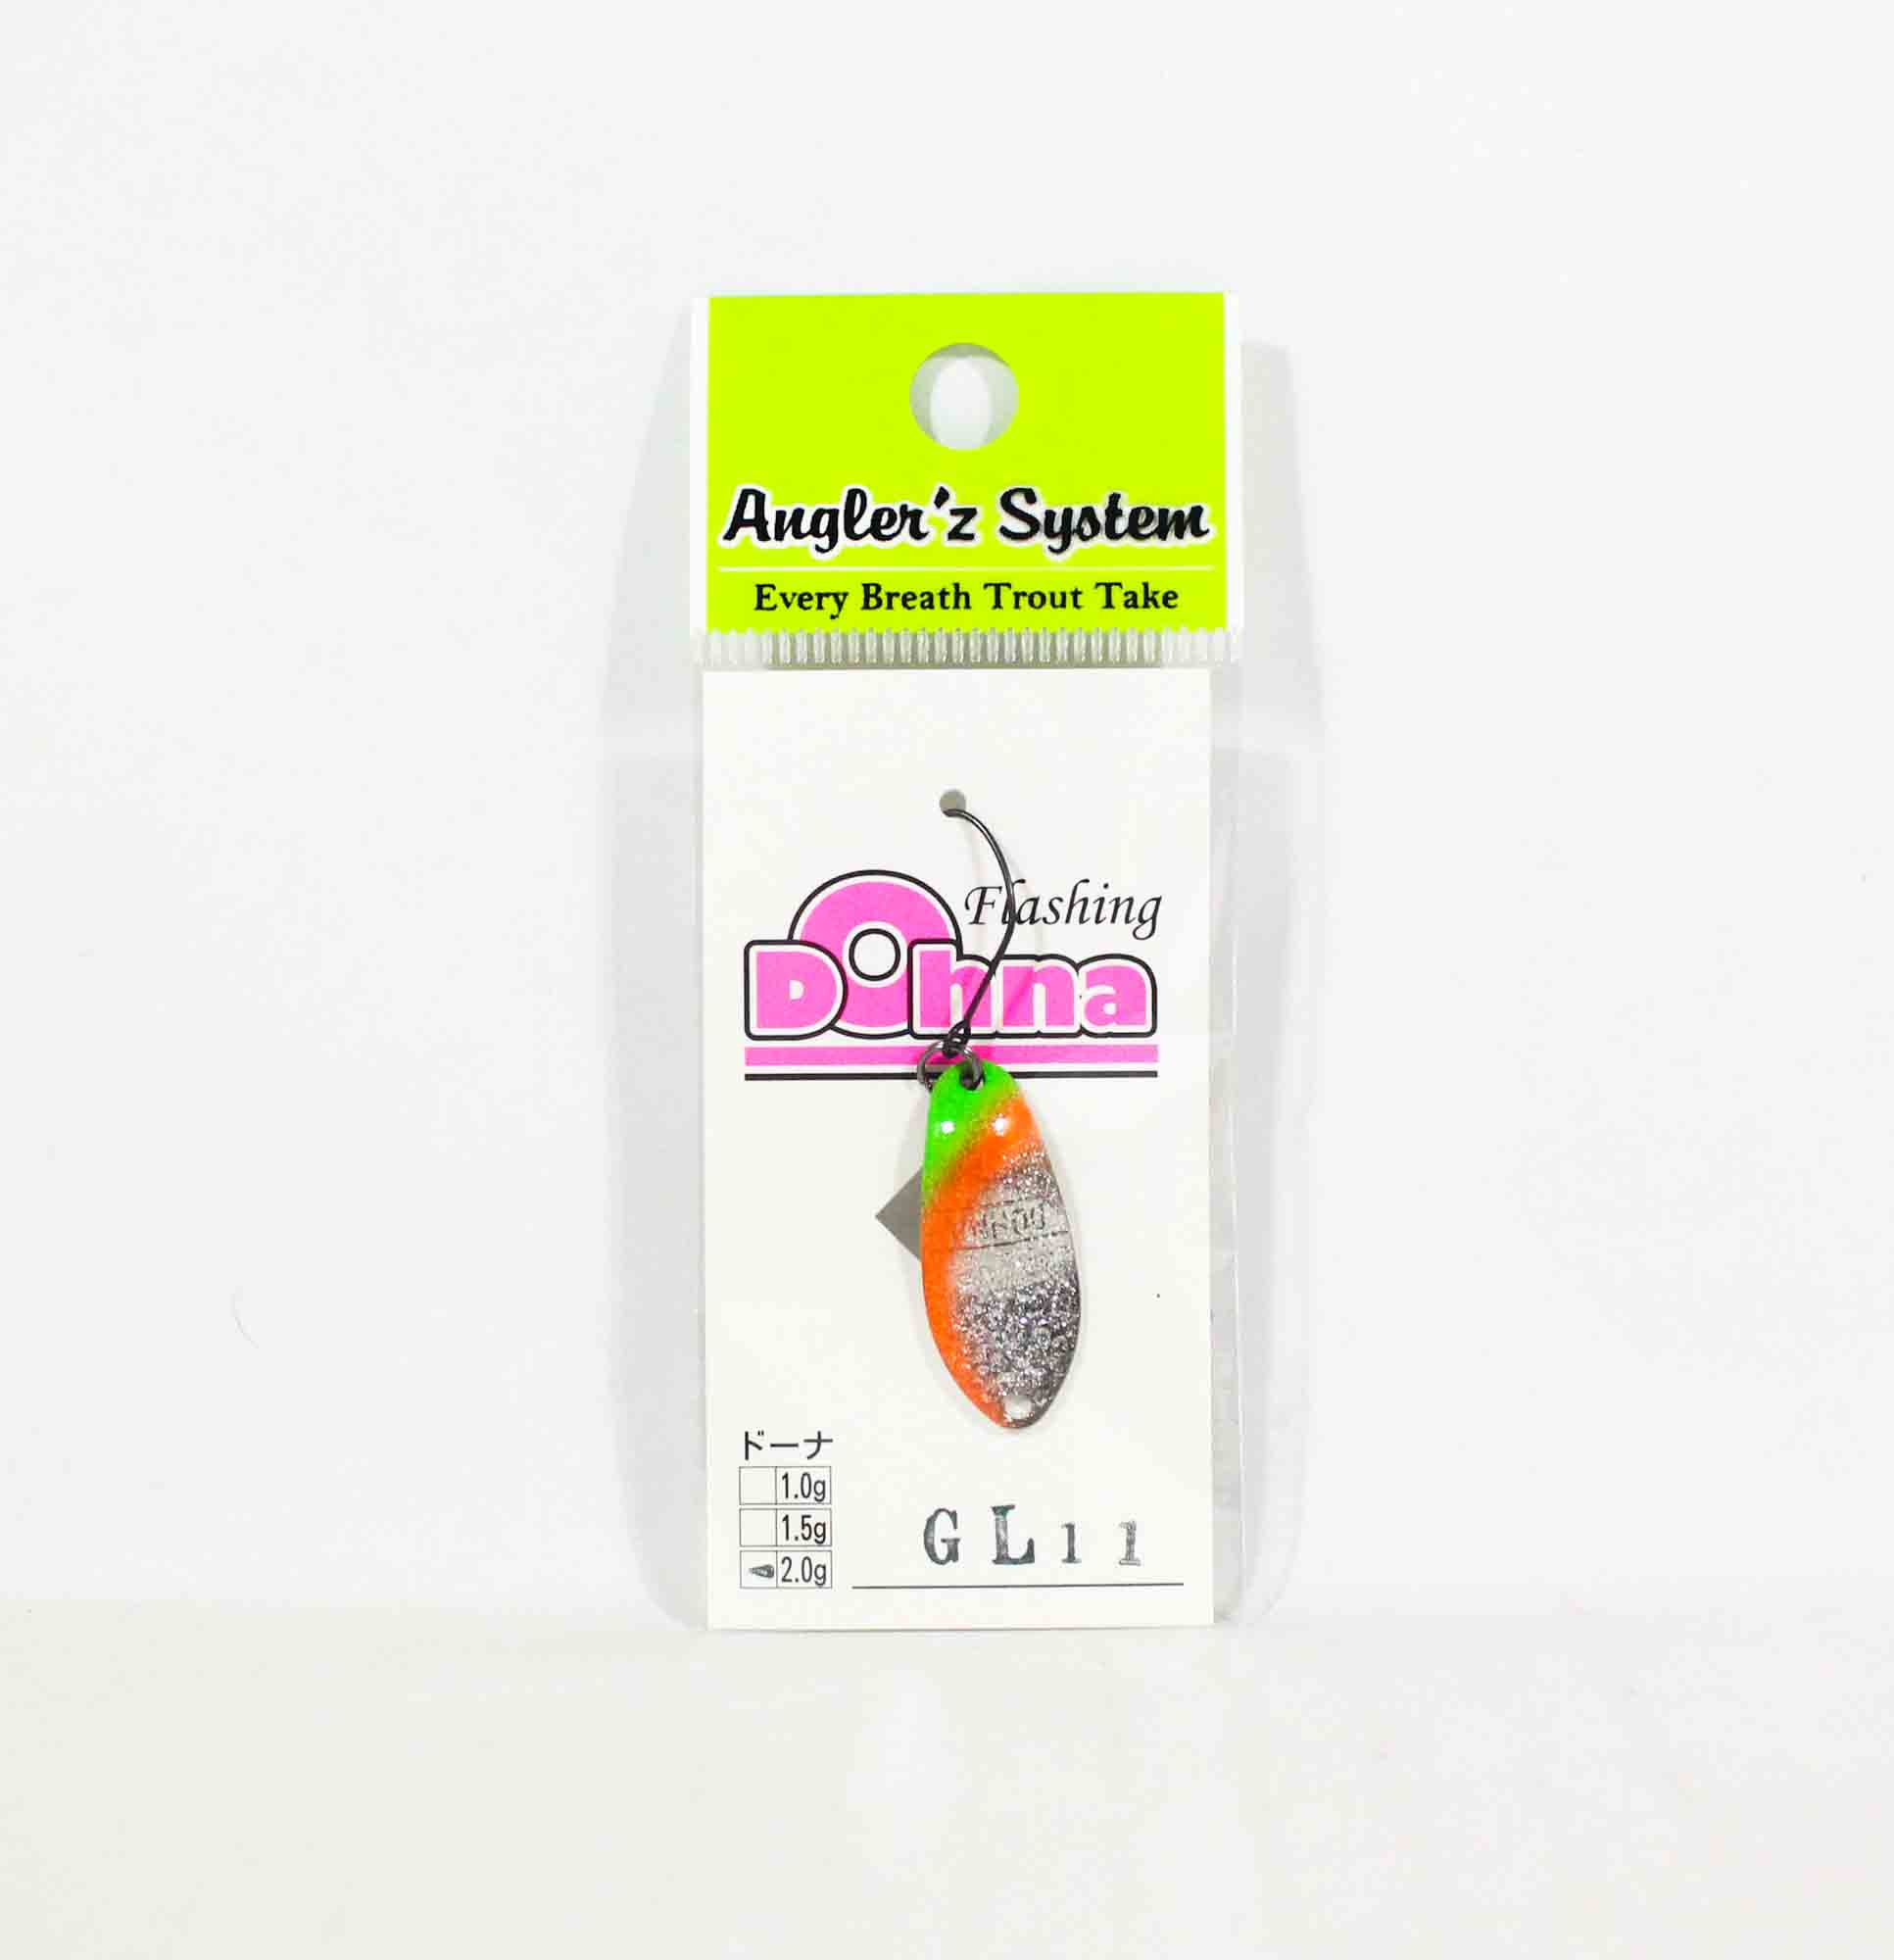 Anglers System Antem Dohna 2.0 grams Spoon Sinking Lure GL11 (6529)